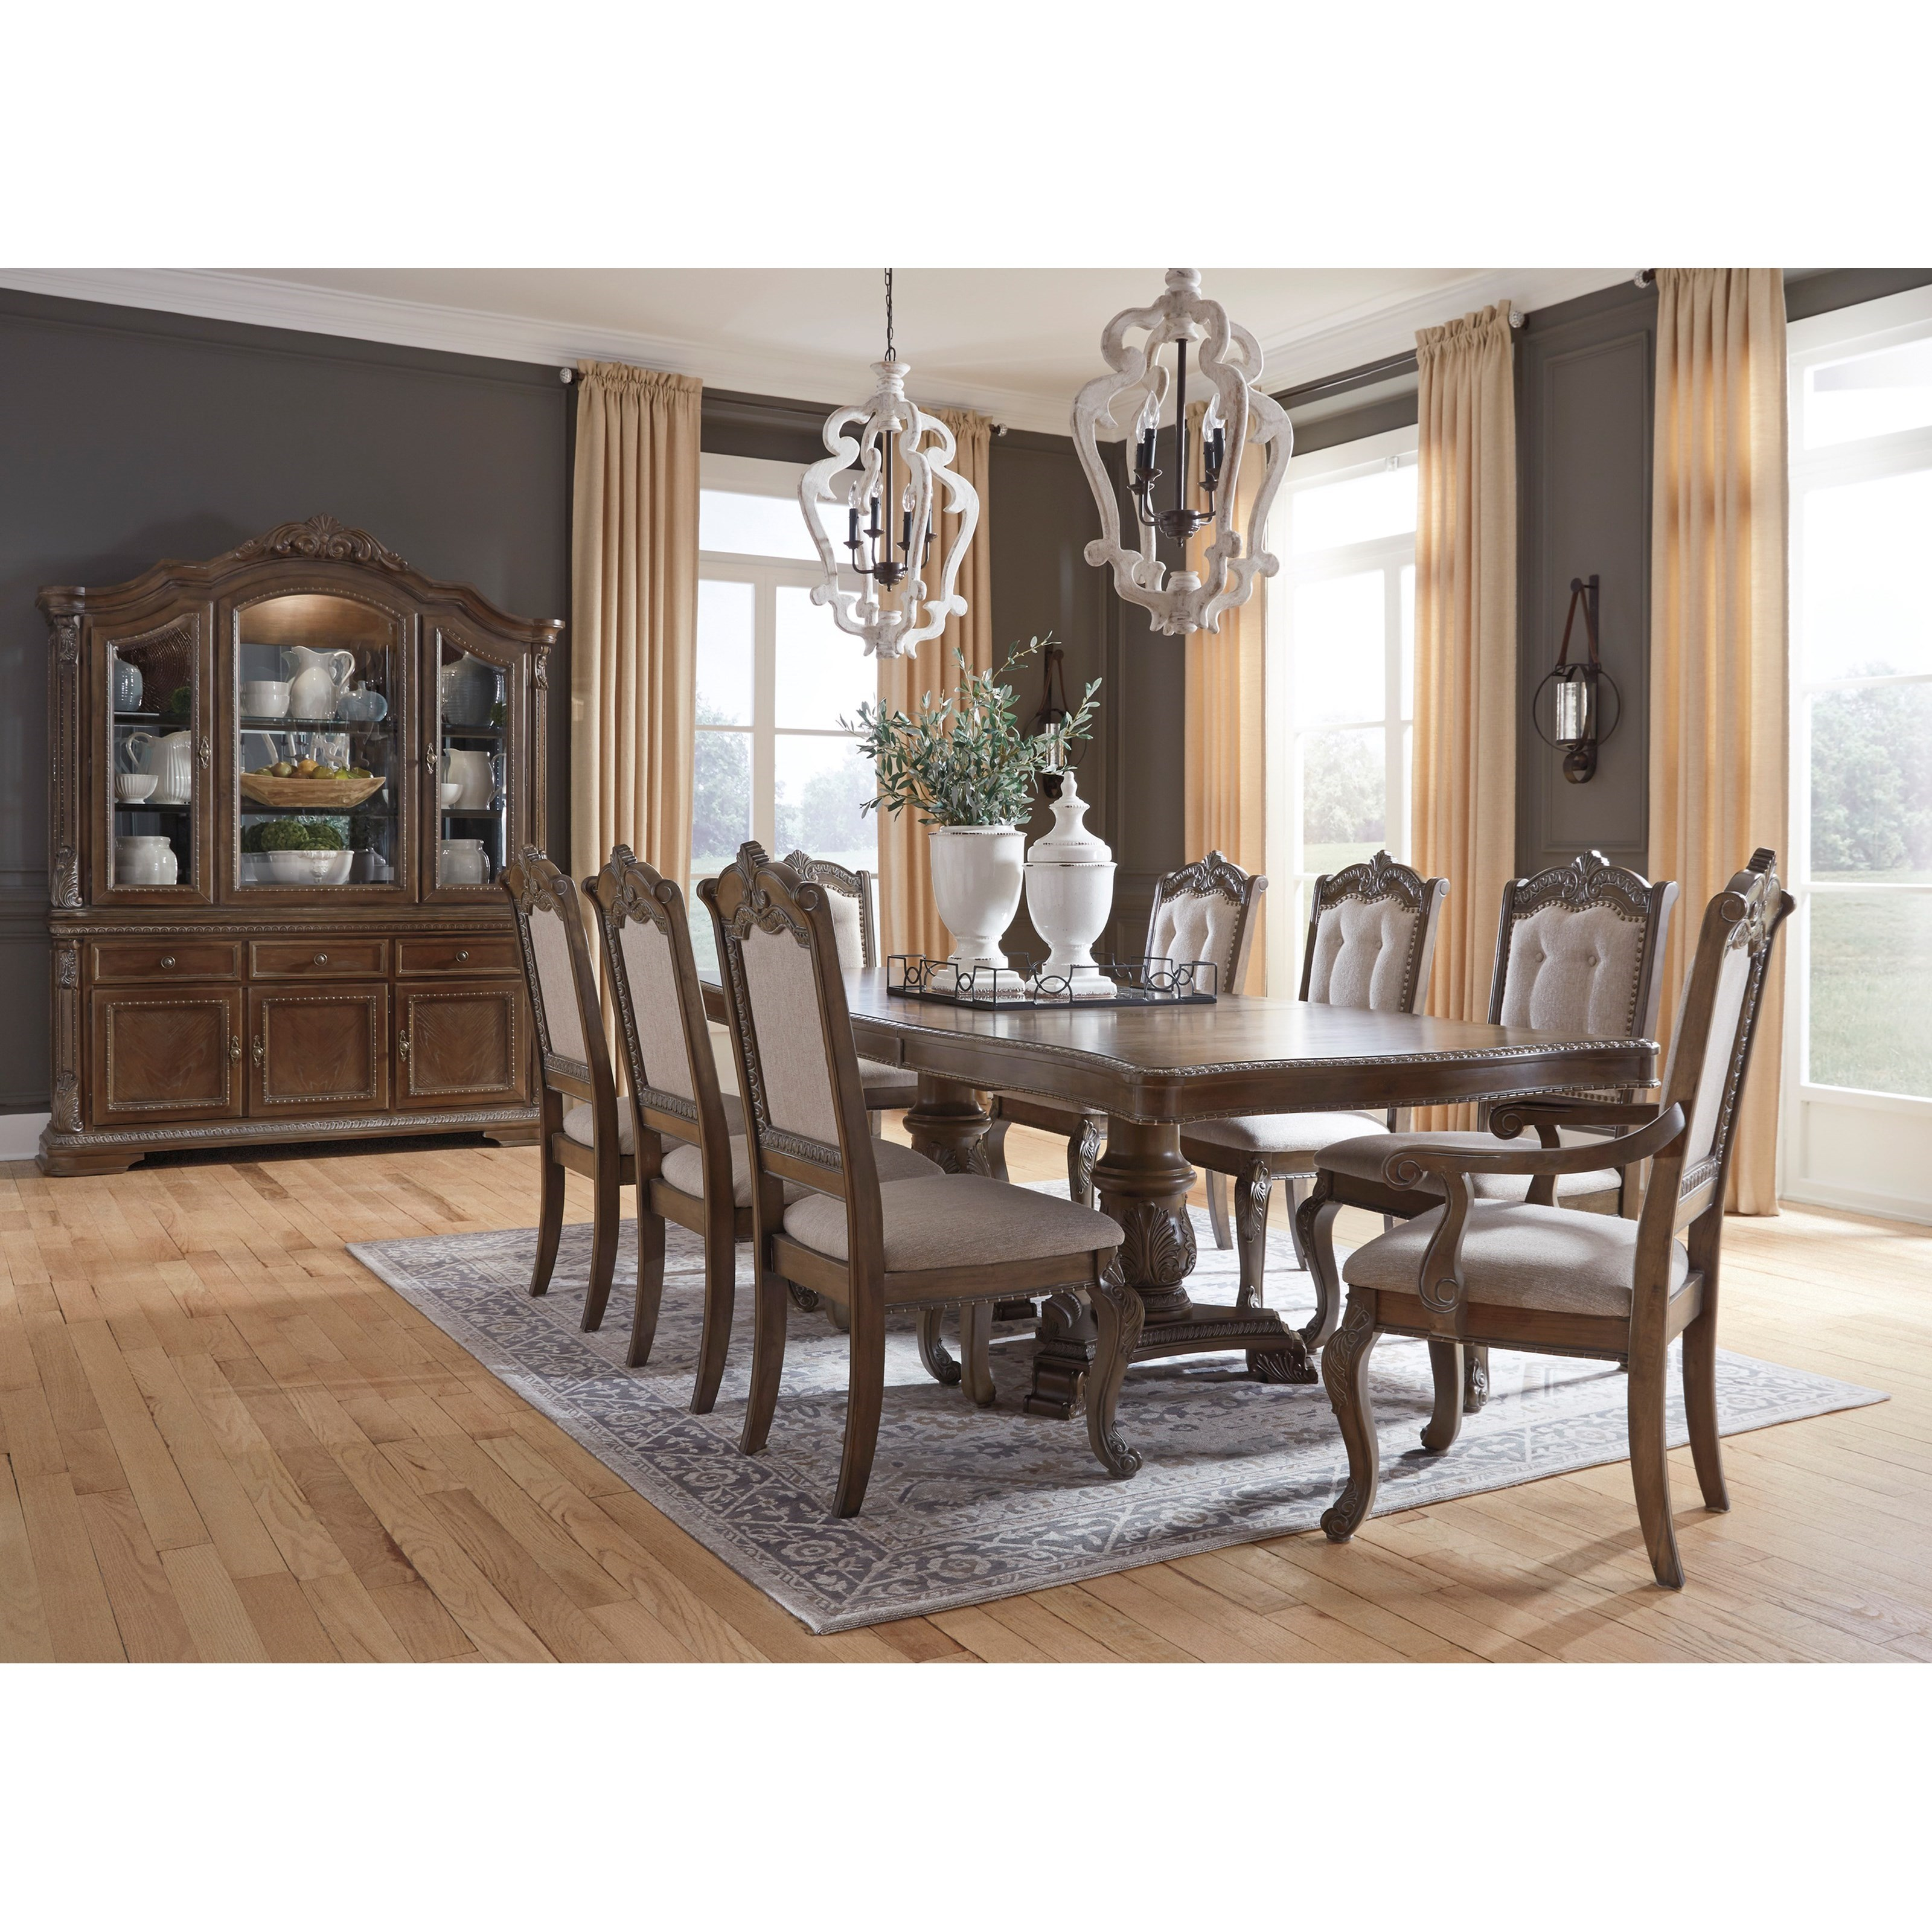 Charmond Formal Dining Room Group by Signature Design by Ashley at A1 Furniture & Mattress